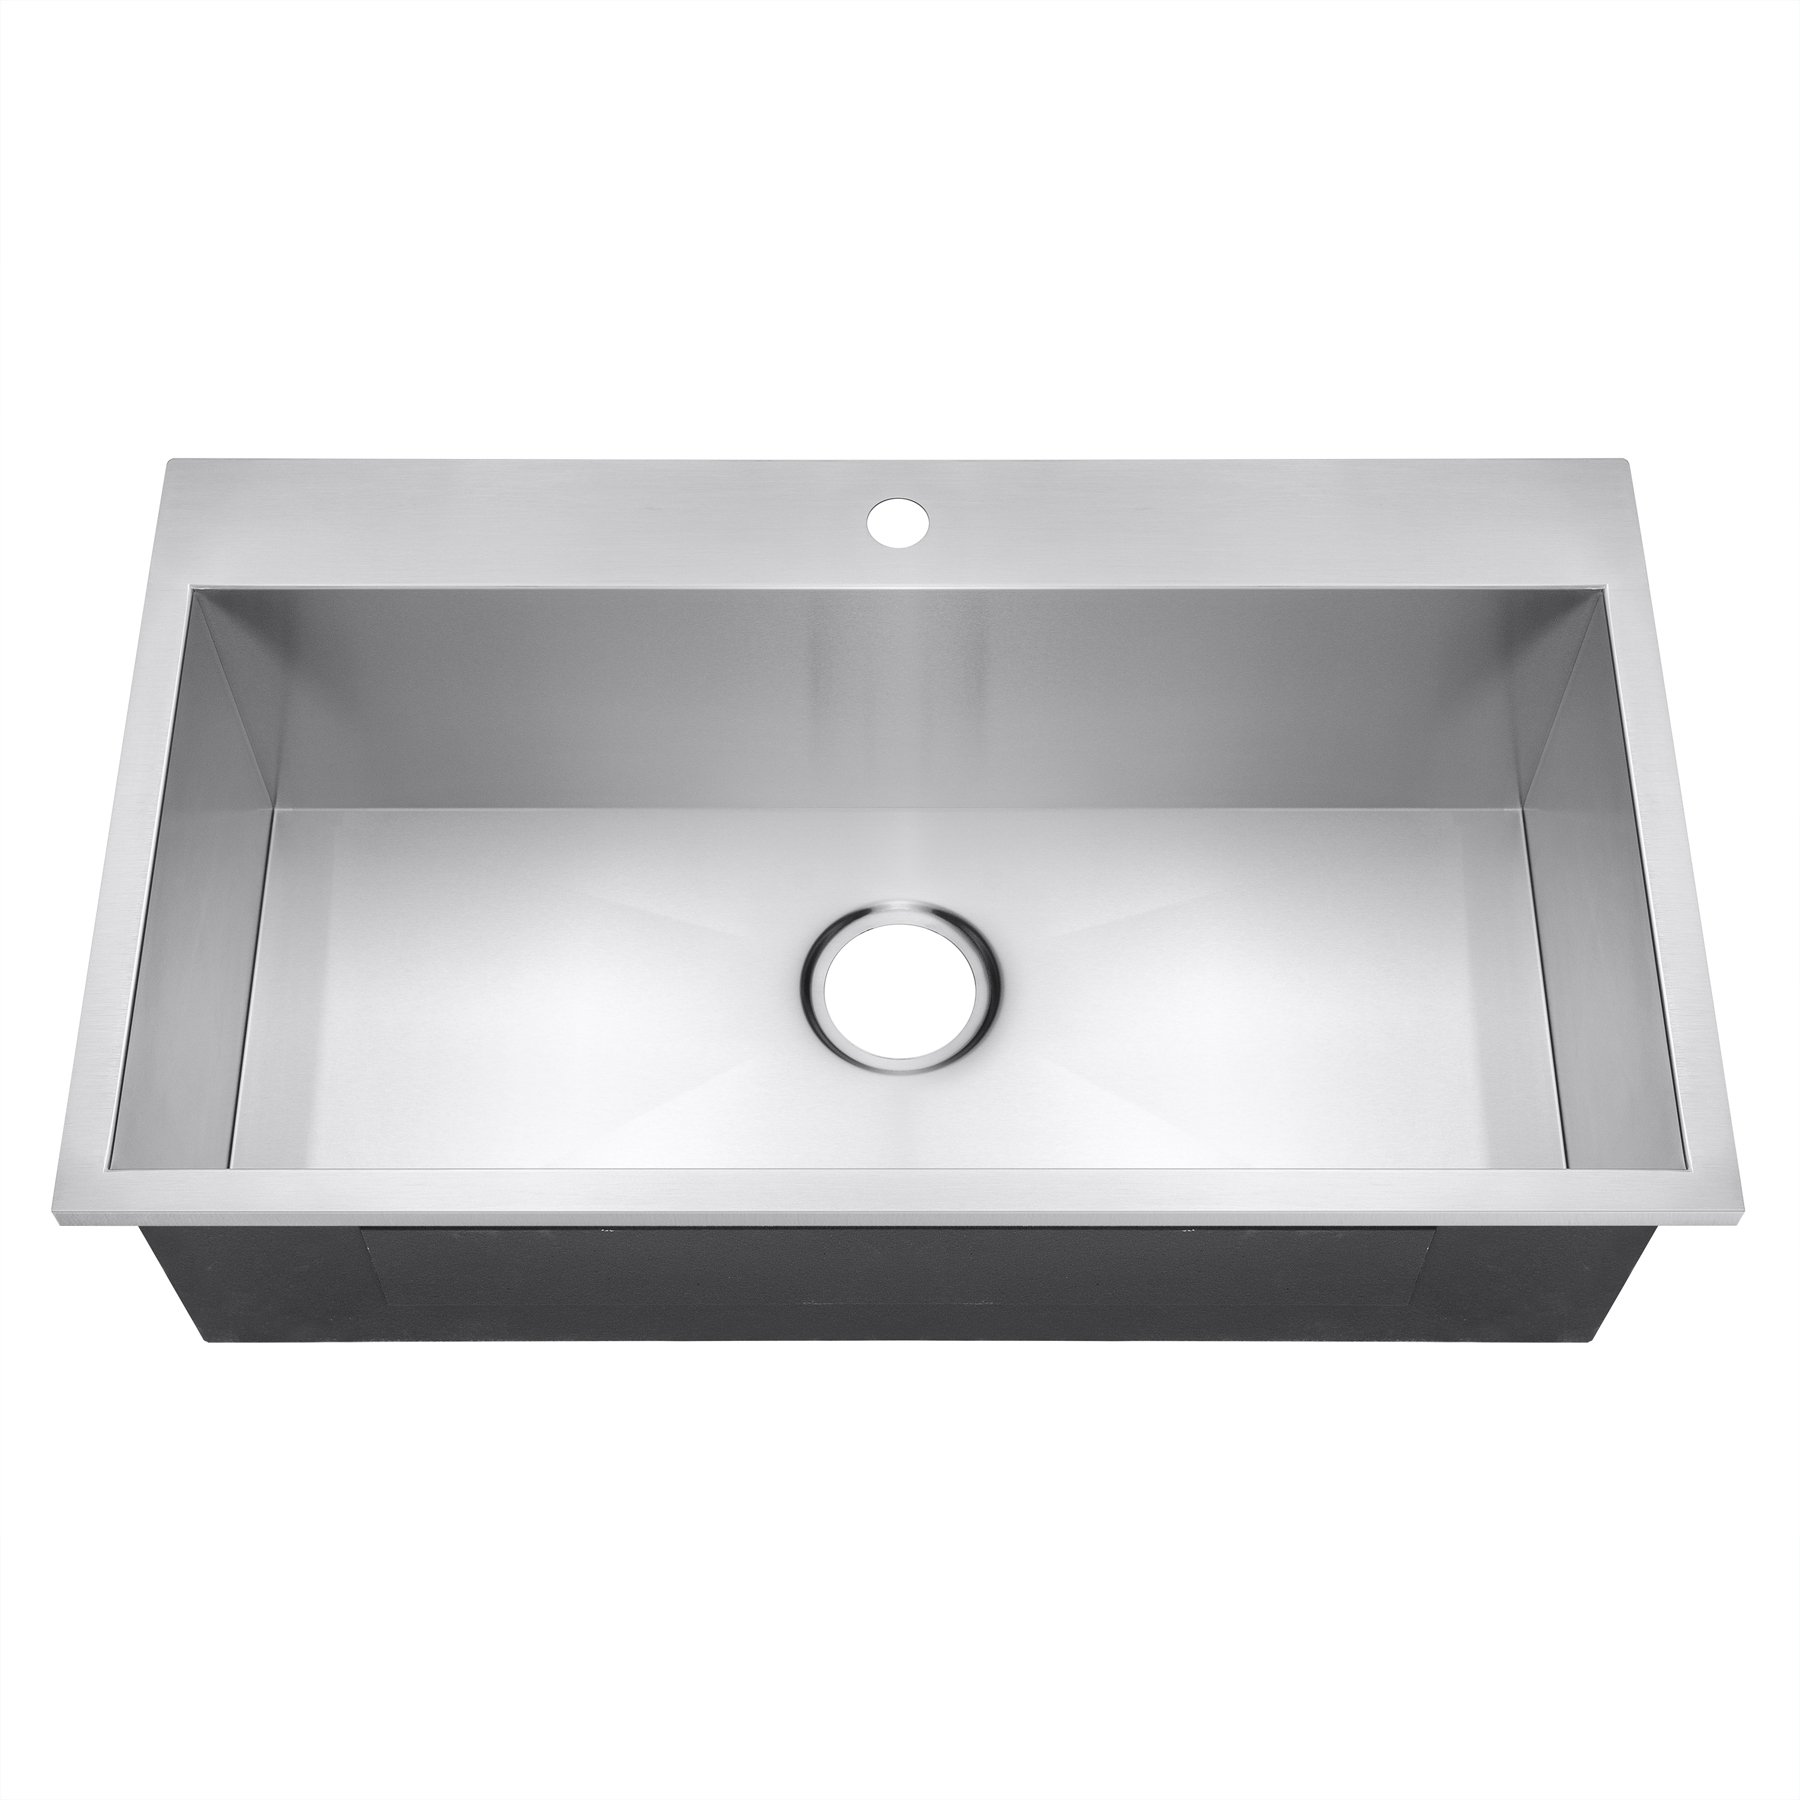 Golden Vantage 32'' x 18'' x 9'' Handmade Top Mount Single Bowl Drop-In 18 Gauge Stainless Steel Kitchen Sink by Golden Vantage